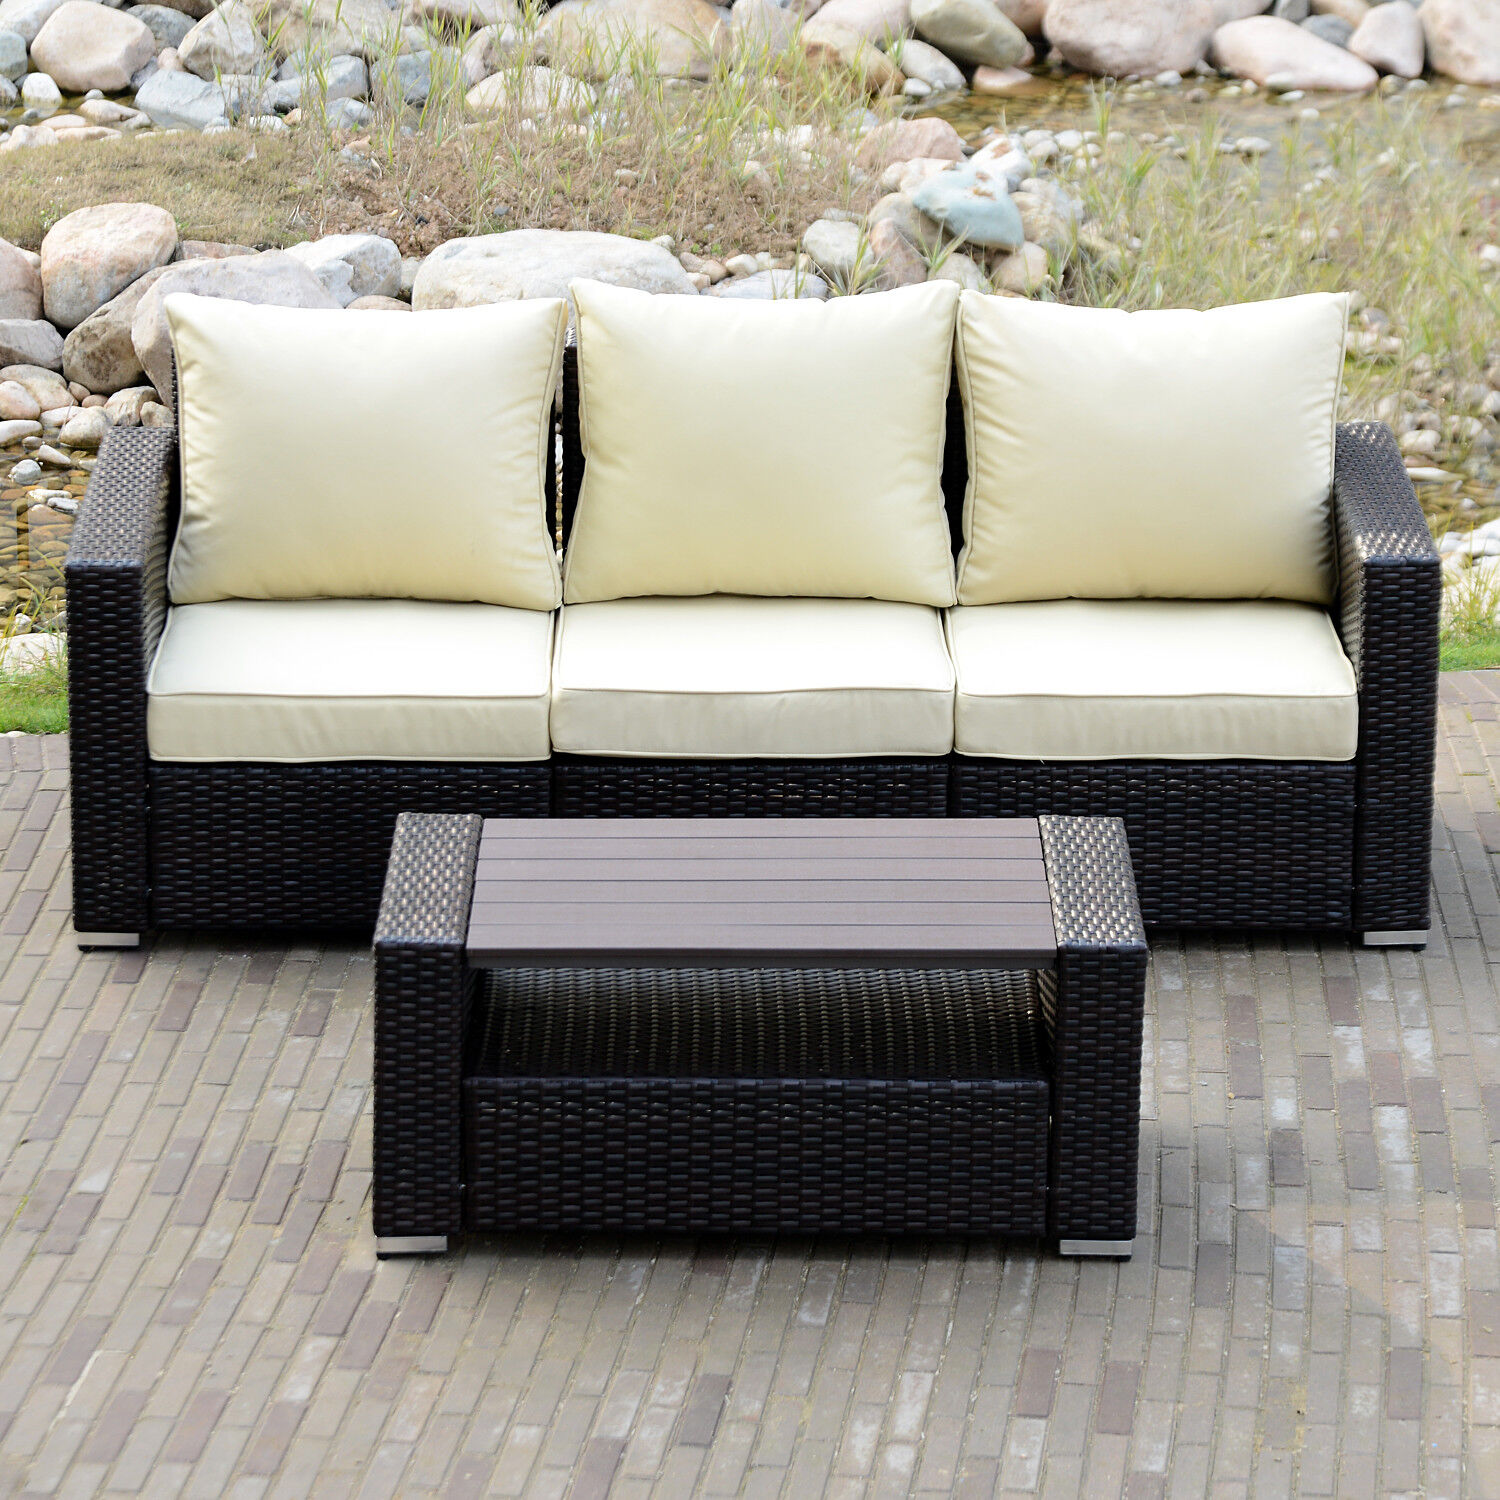 Garden Furniture - Sectional Outdoor Patio Wicker Rattan Sofa Sets PE Deck Couch Garden Furniture